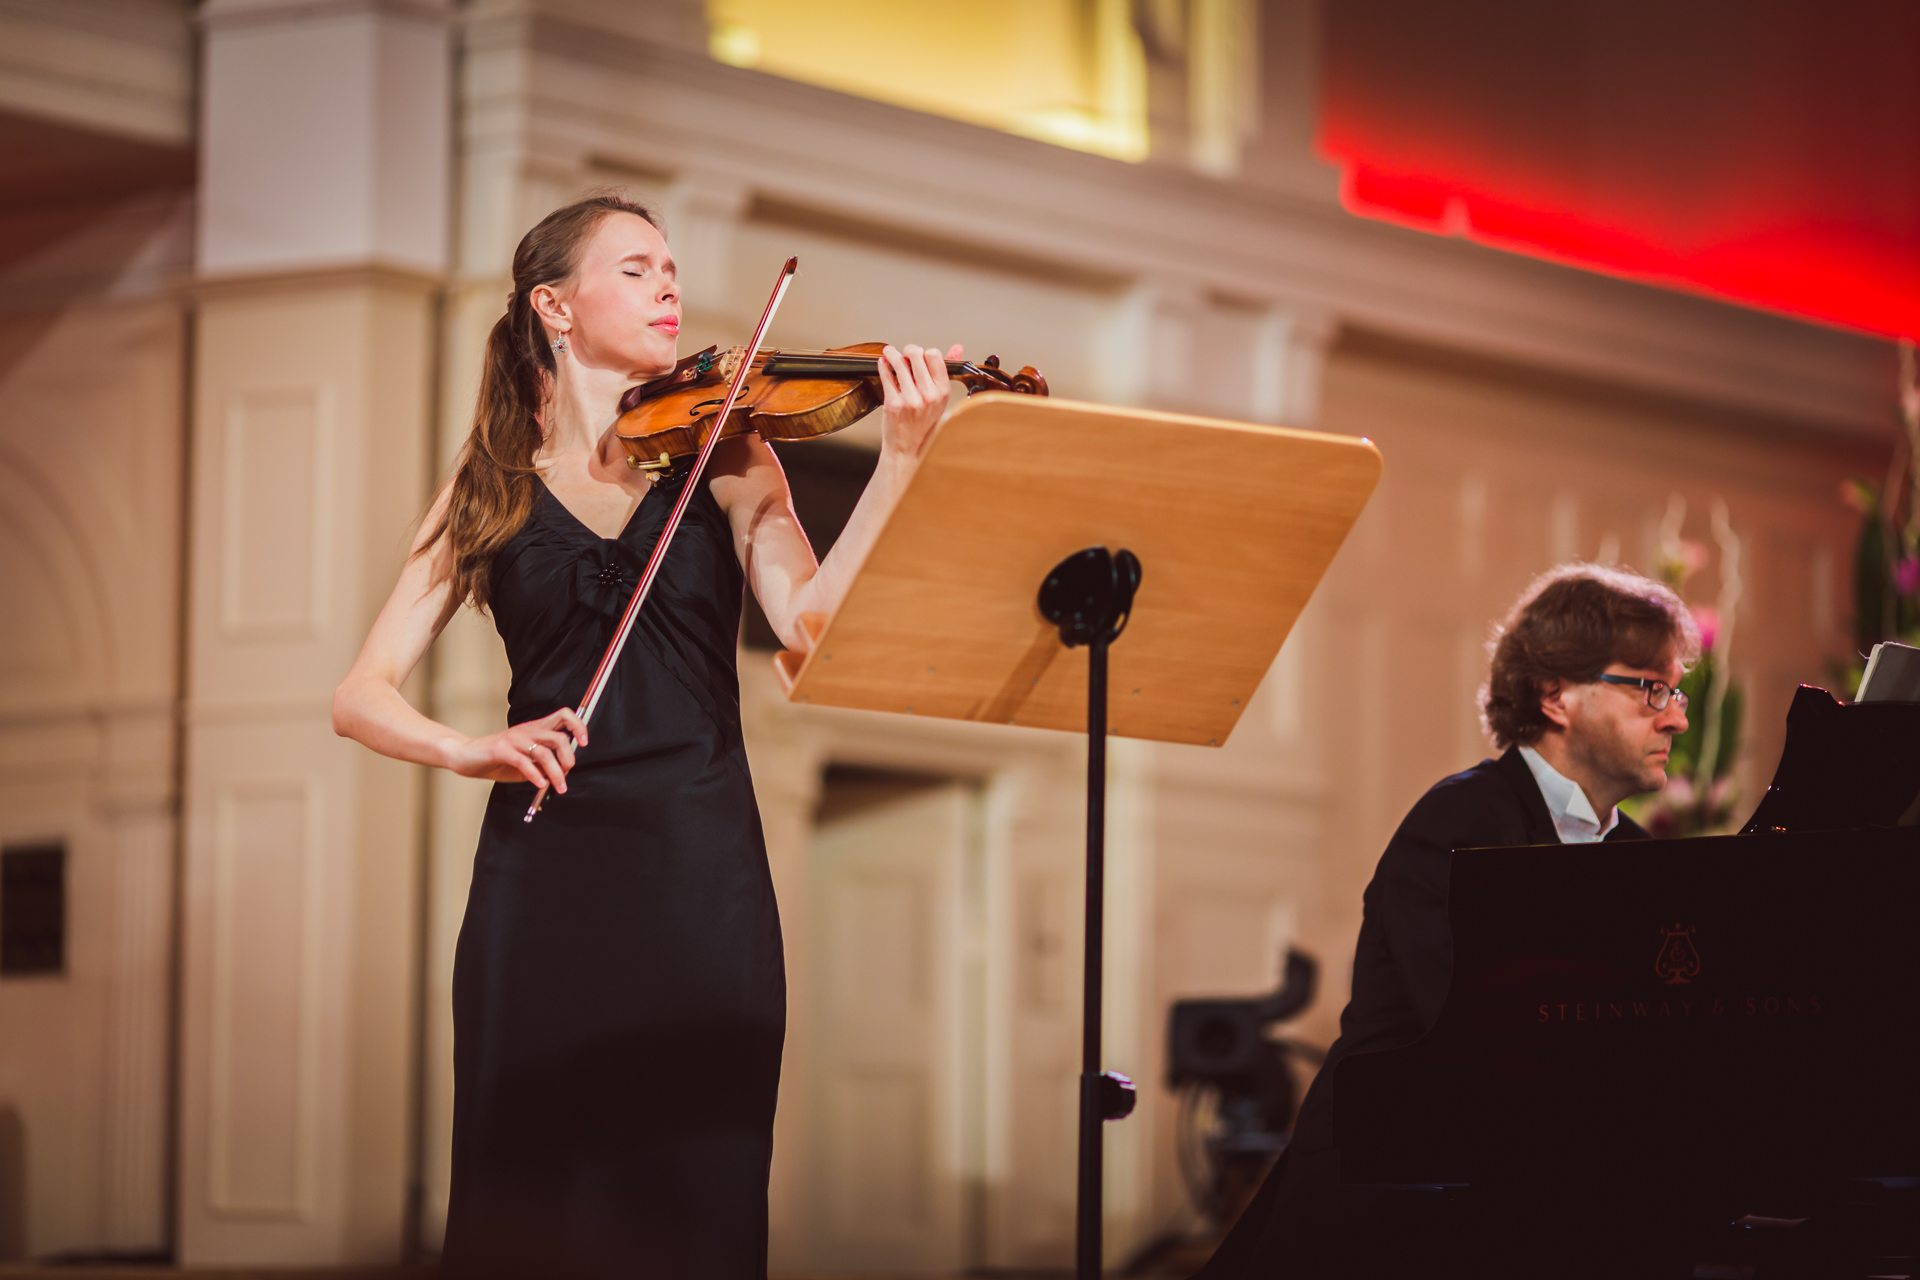 Maja Syrnicka (Poland) - Stage 1 - 15th International H. Wieniawski Violin Competition STEREO